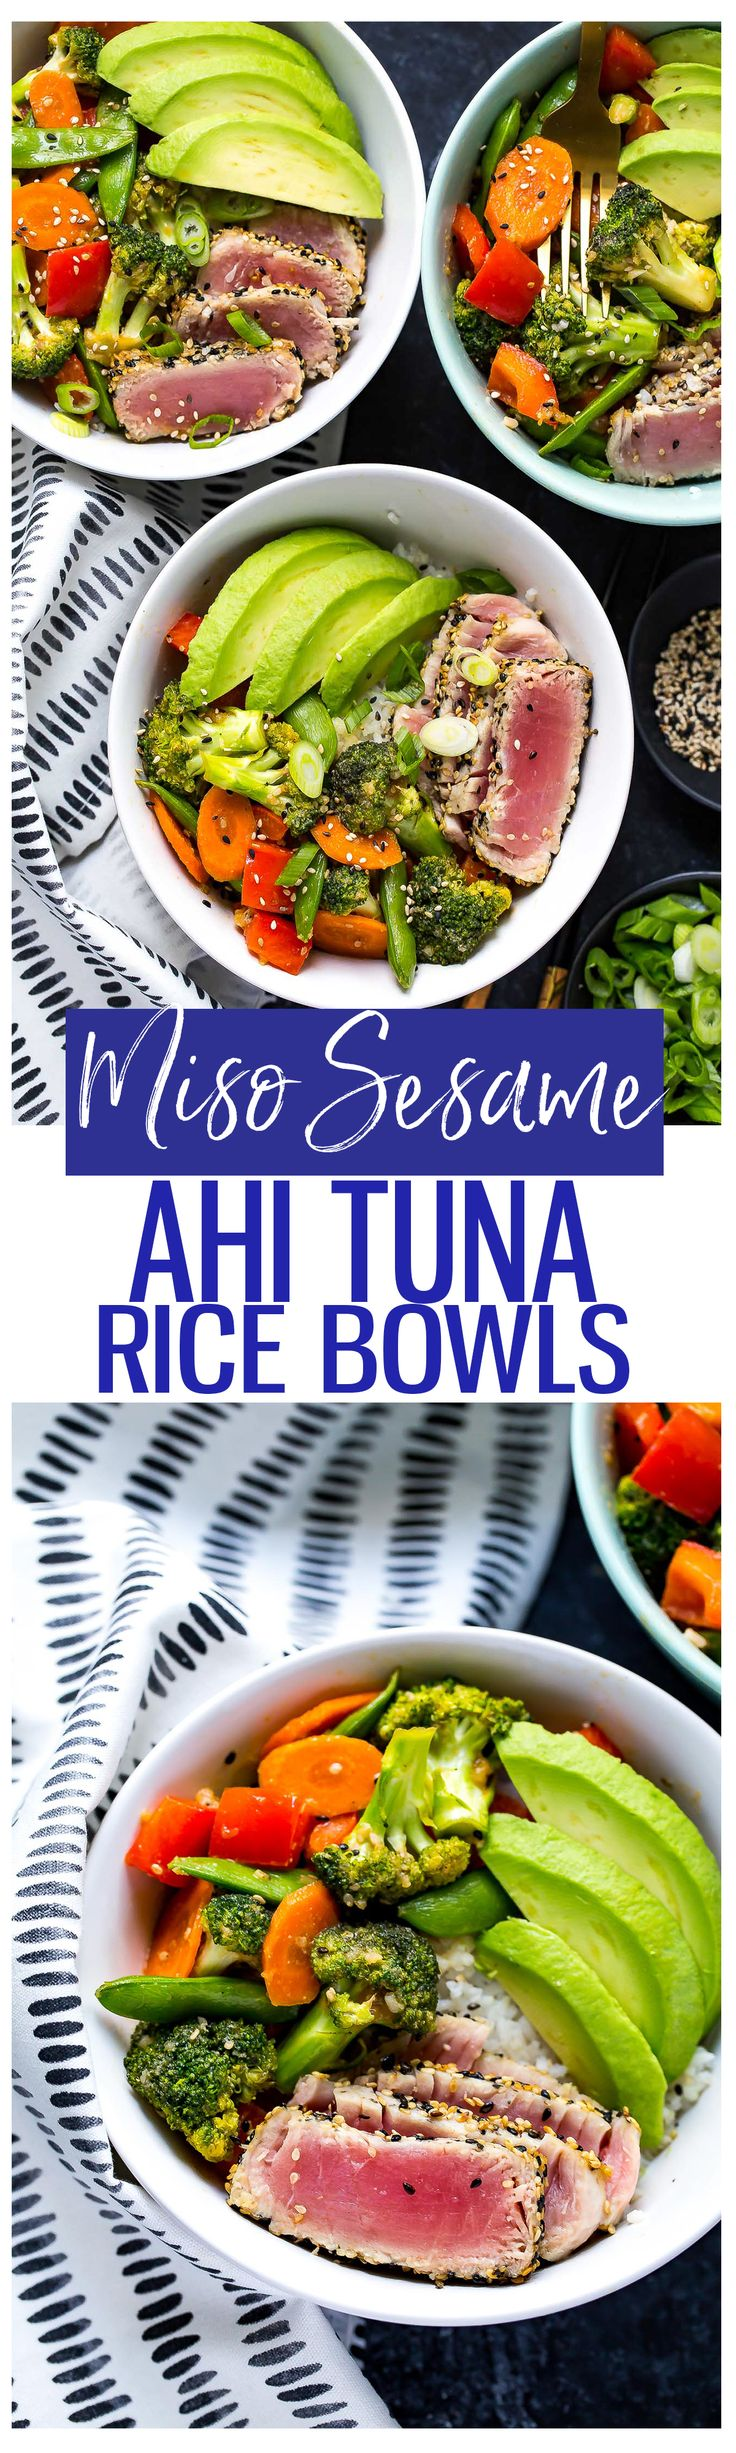 Miso Sesame Tuna Rice Bowls are a yummy spin on the weeknight stirfry, filled with seared ahi tuna, stir fry veggies in a savoury miso sauce, jasmine rice and sliced avocado!